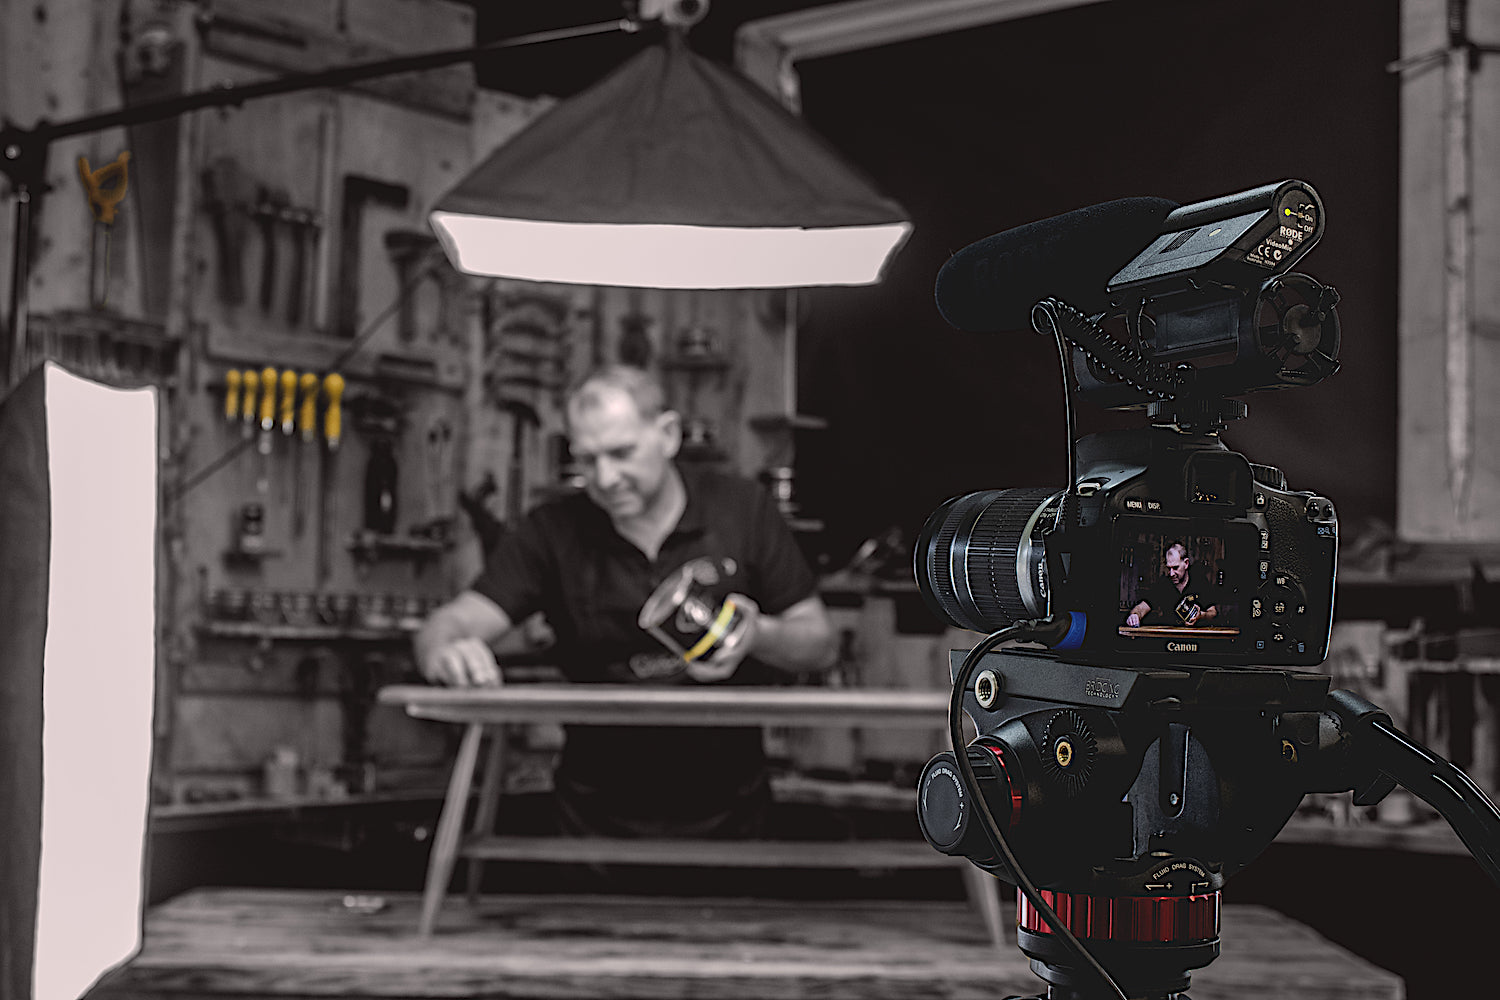 simon gilboy in front of the camera demonstrating how to use beeswax wood polish